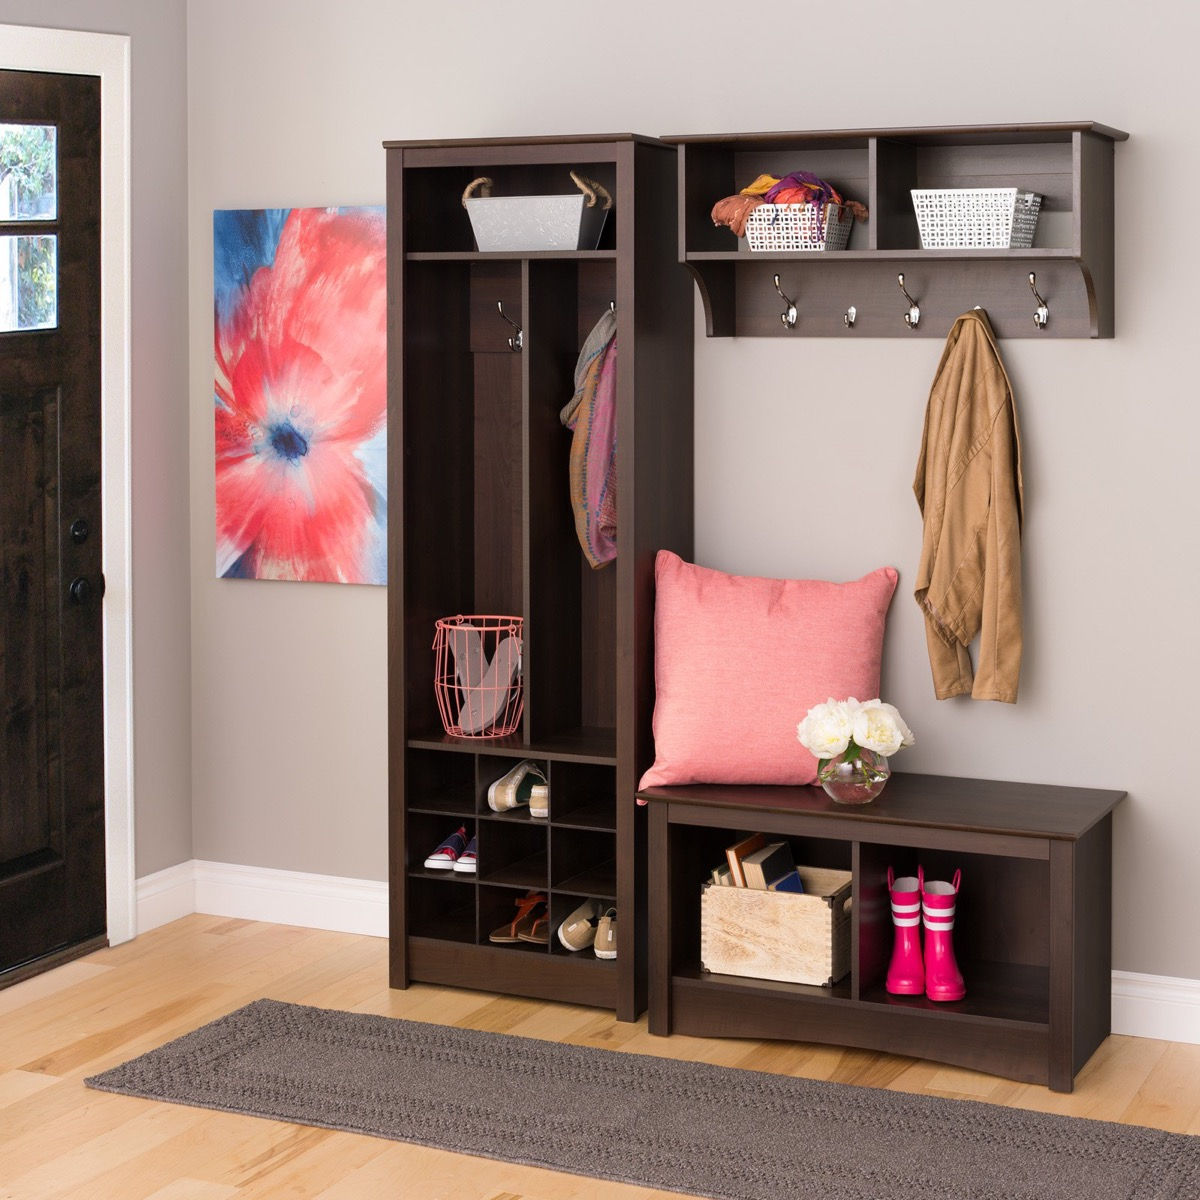 3-Piece-Big-Entryway-Bench-And-Shelf-Set-Dark-Brown-With-Shelves-And-Storage